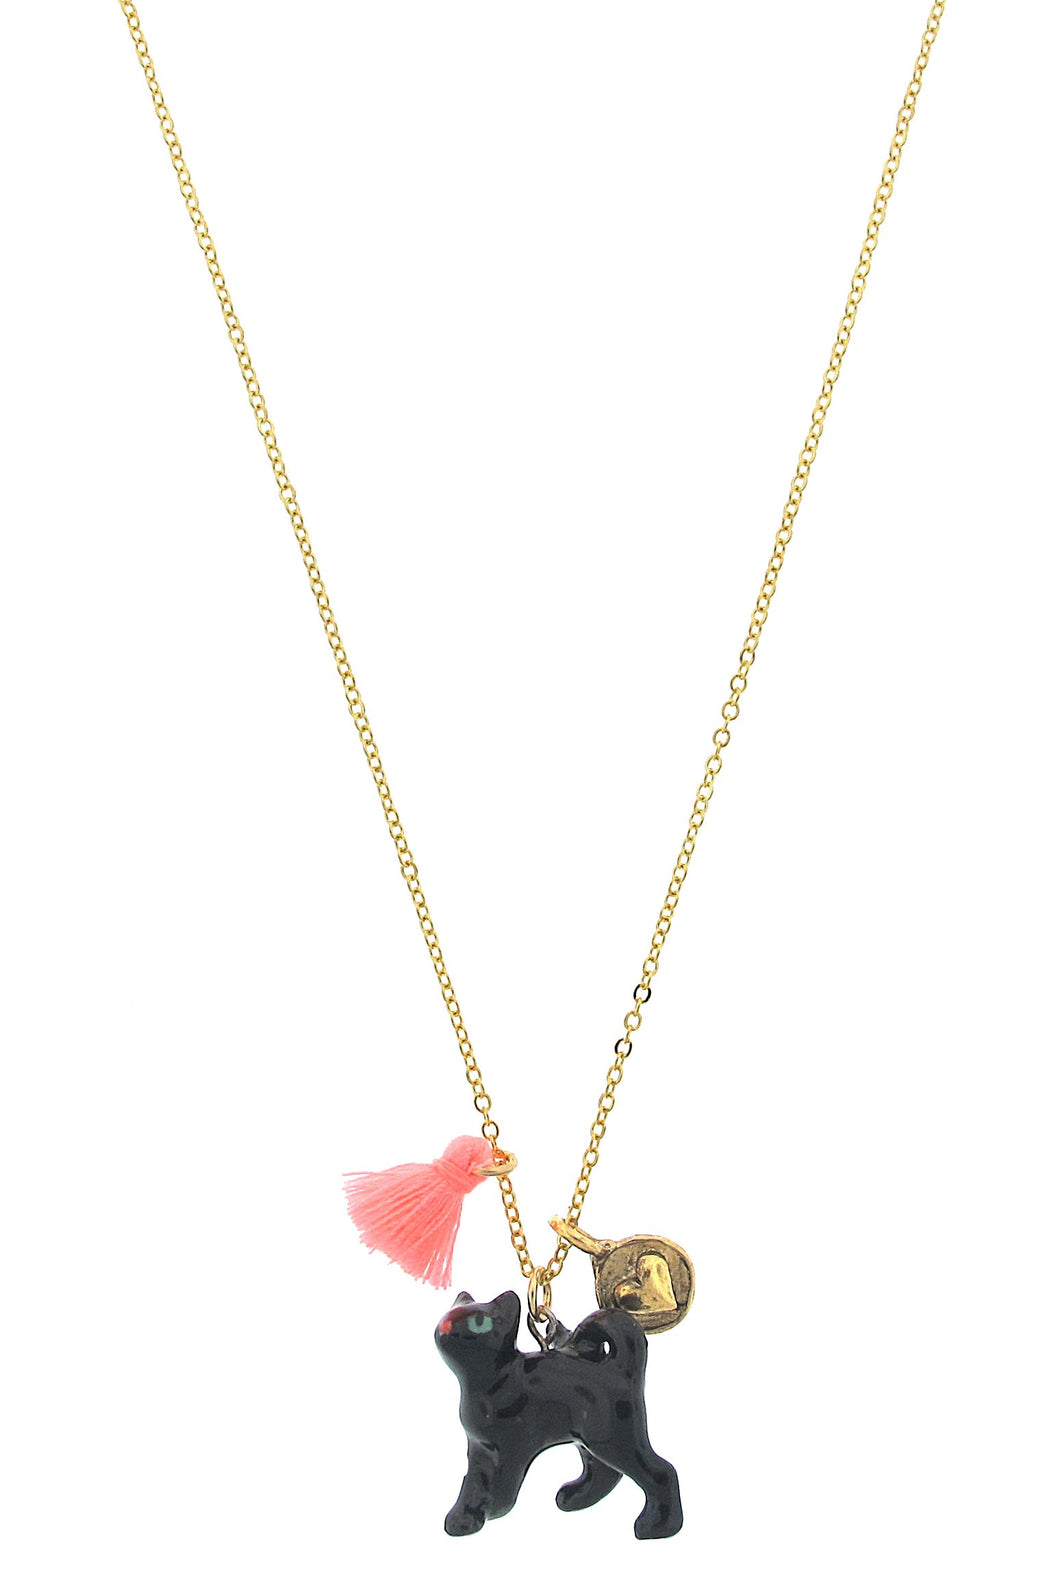 Black Cat Lil' Critters Necklace